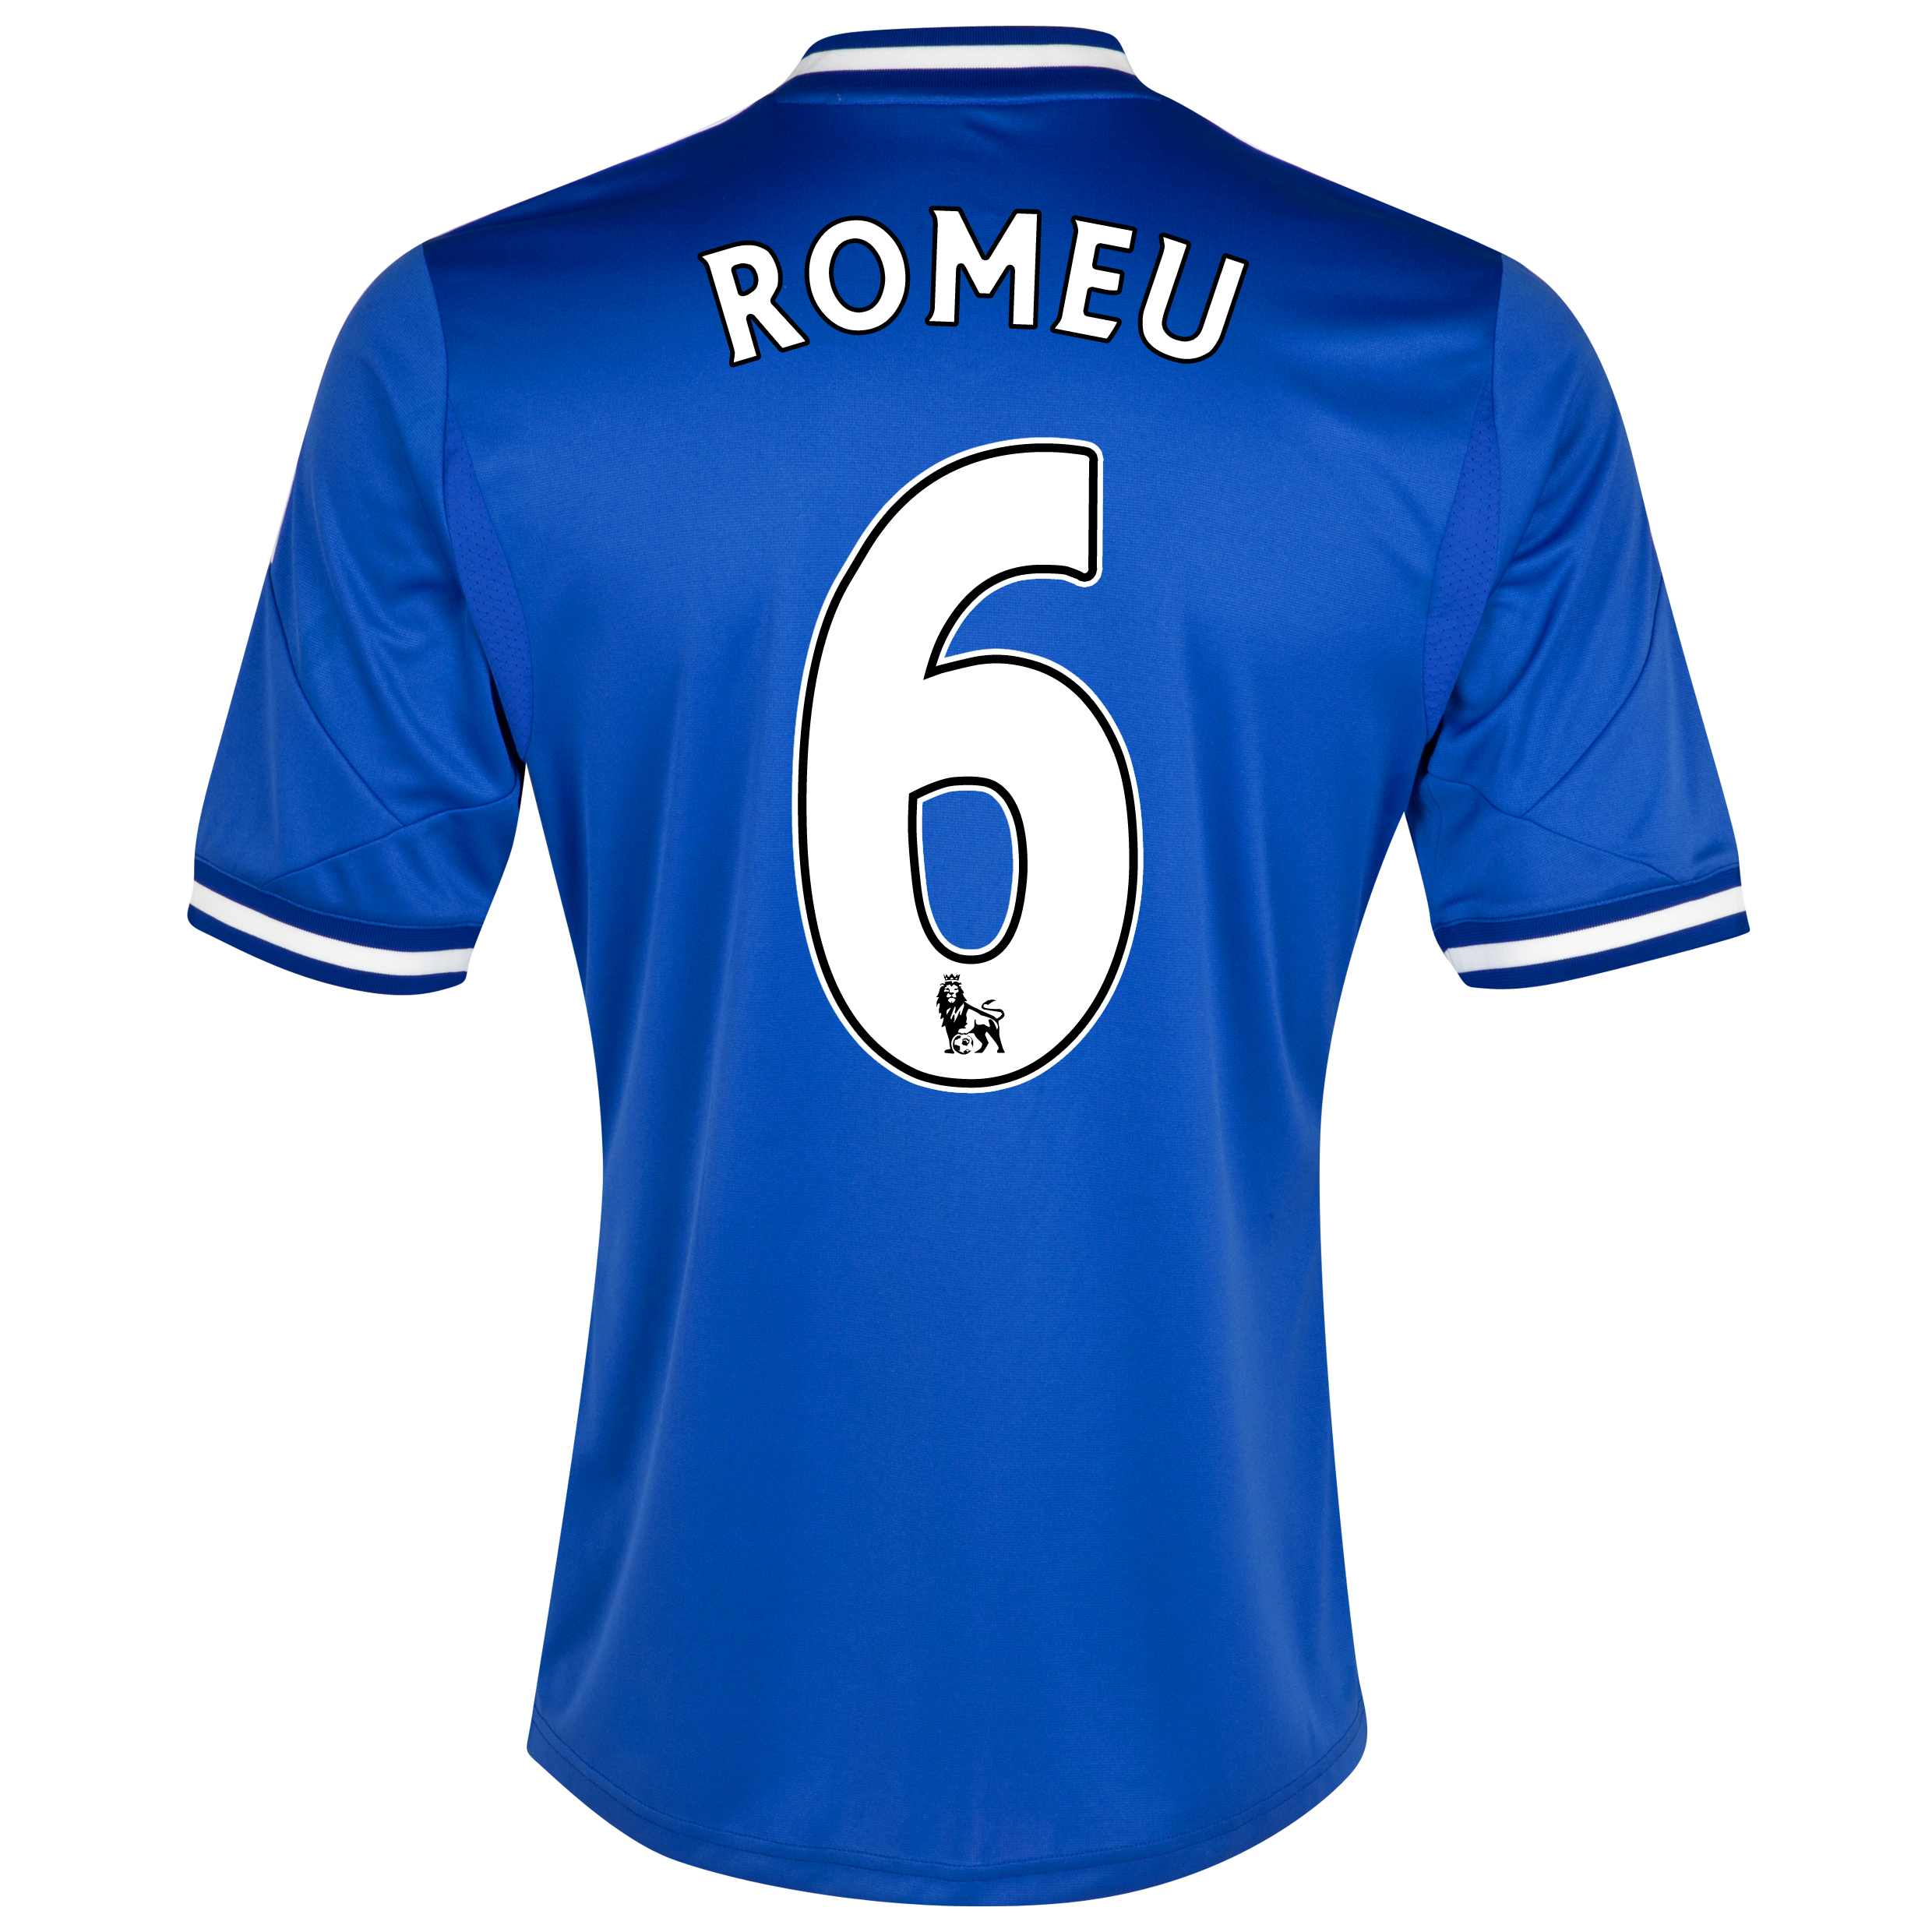 Chelsea Home Shirt 2013/14 with Romeu 6 printing